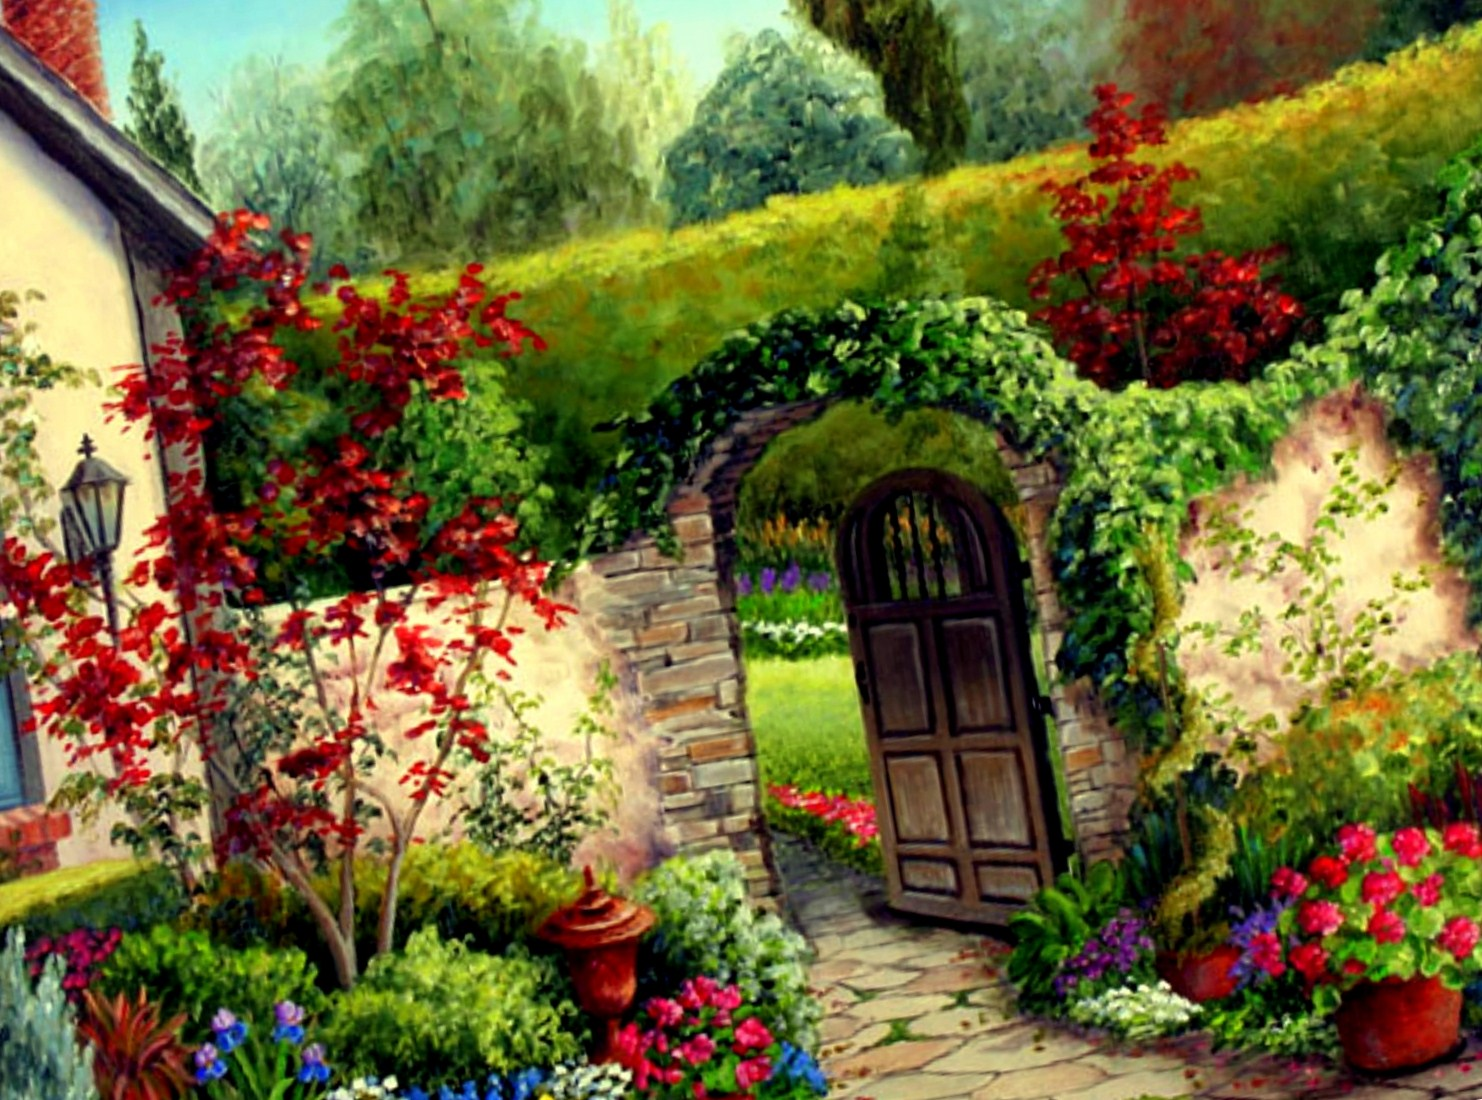 Delicieux Garden Landscape Design Photos Garden Free Hd Wallpapers